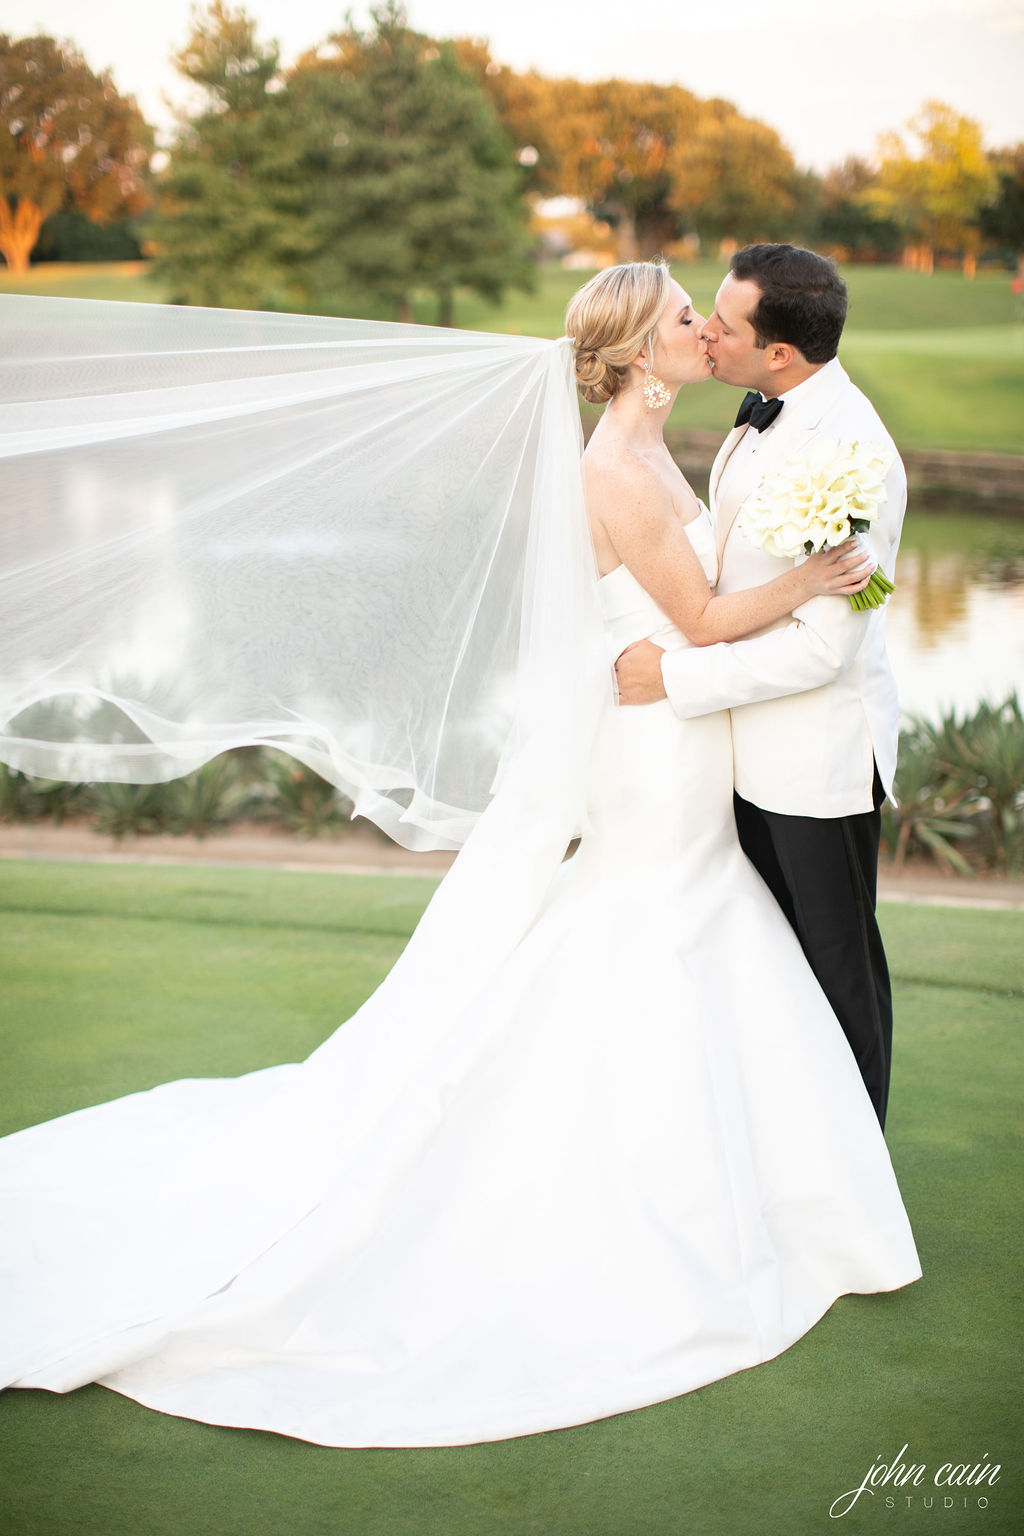 Dallas Country Club Wedding - Timeless Dallas Wedding - Wedding Planner in Dallas - Allday Events - Portraits - 108.JPG